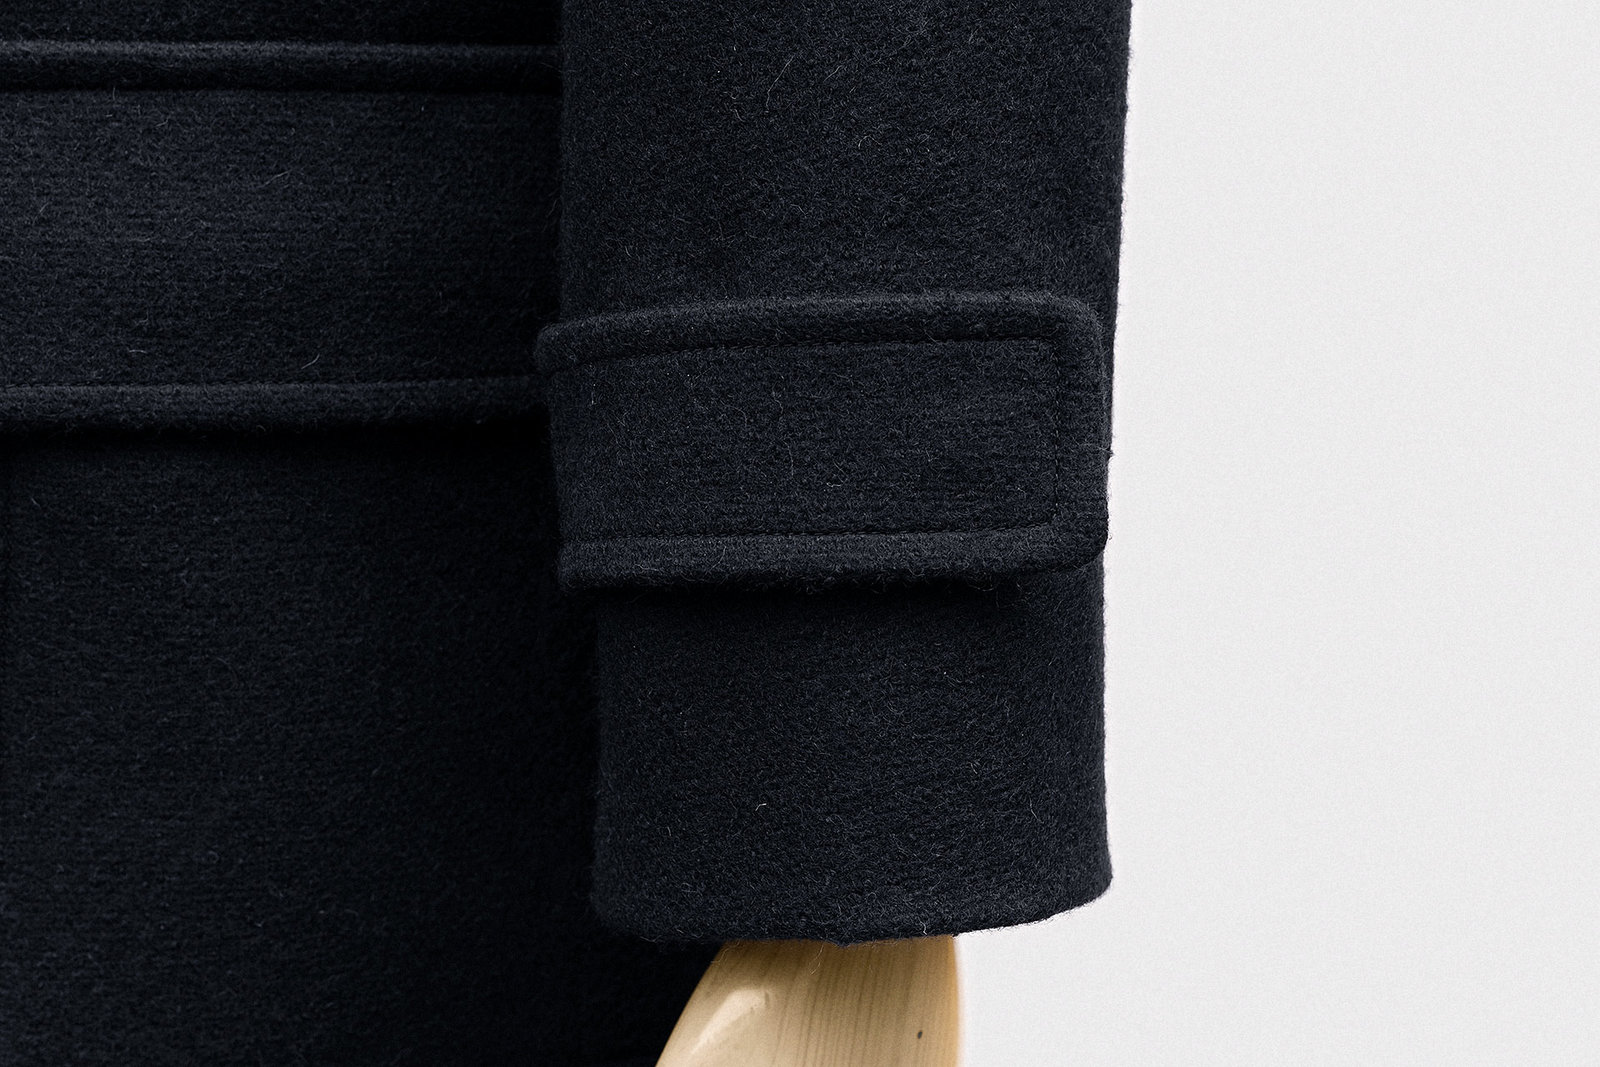 duffle-coat-wool-melton-dark-navy-8@2x.jpg